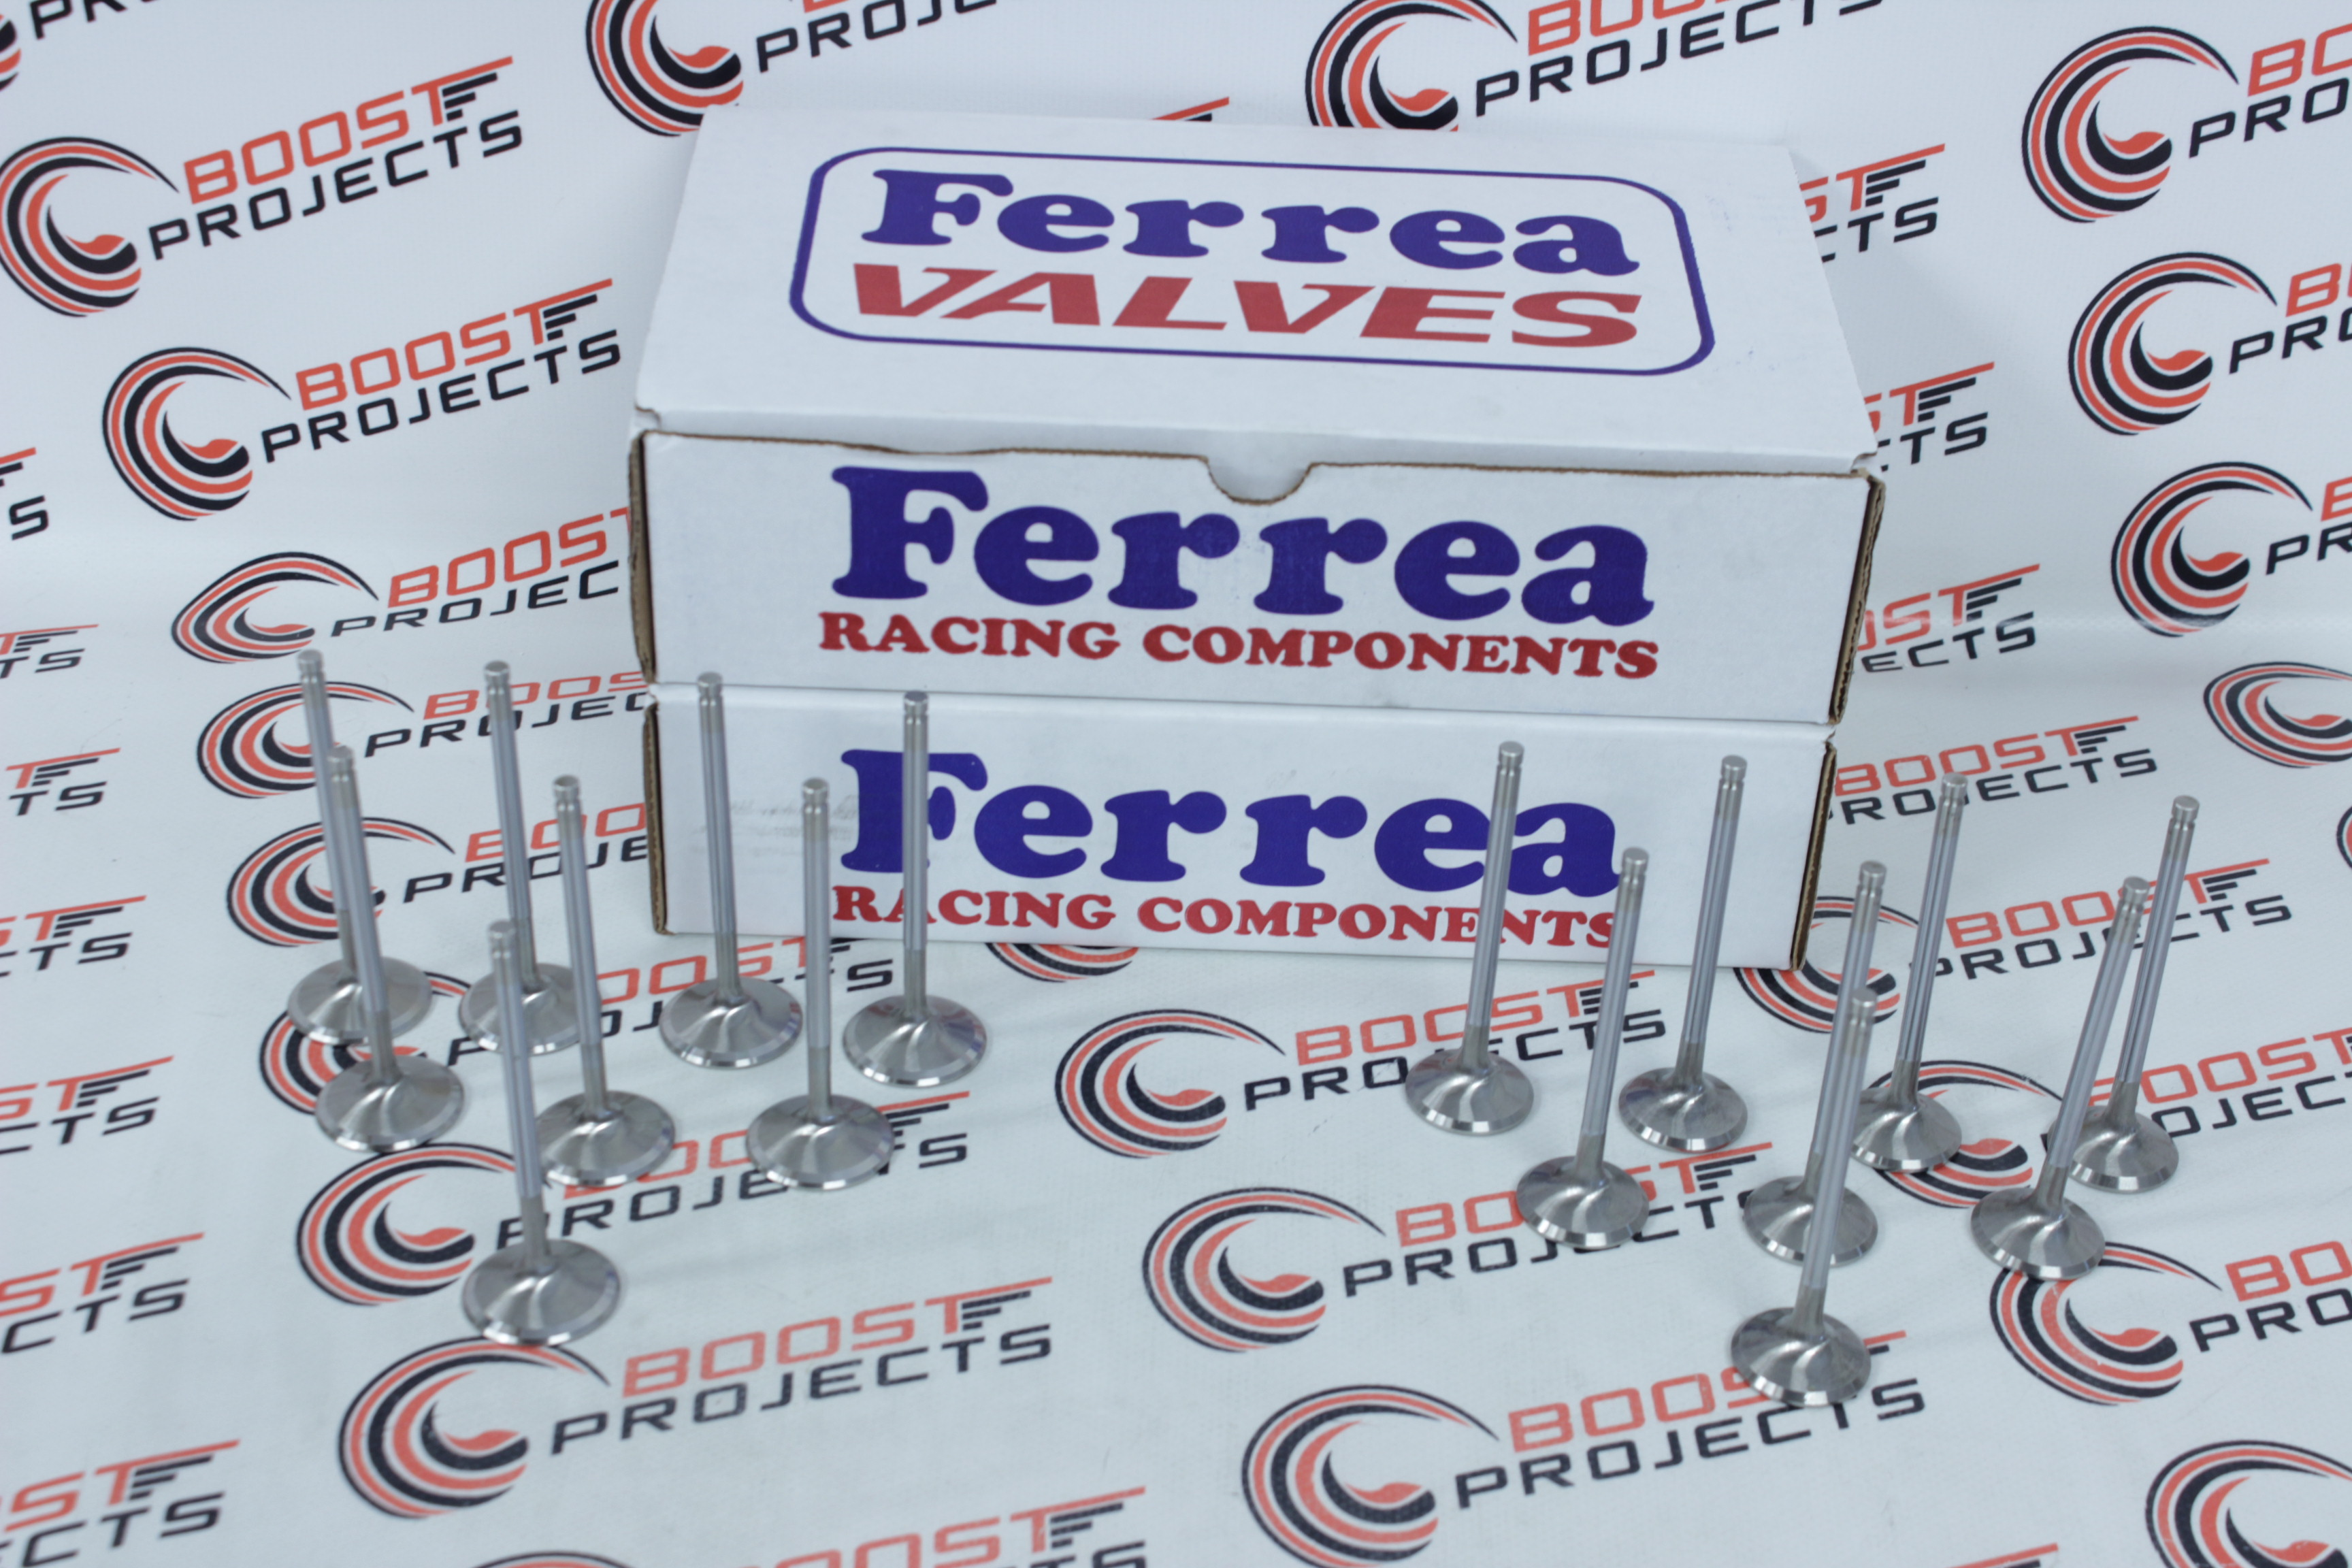 Ferrea Exhaust Valves HDia 1.55 11//32 5.075 For 60-12 FORD 351 W/&GT40 HEAD F5028